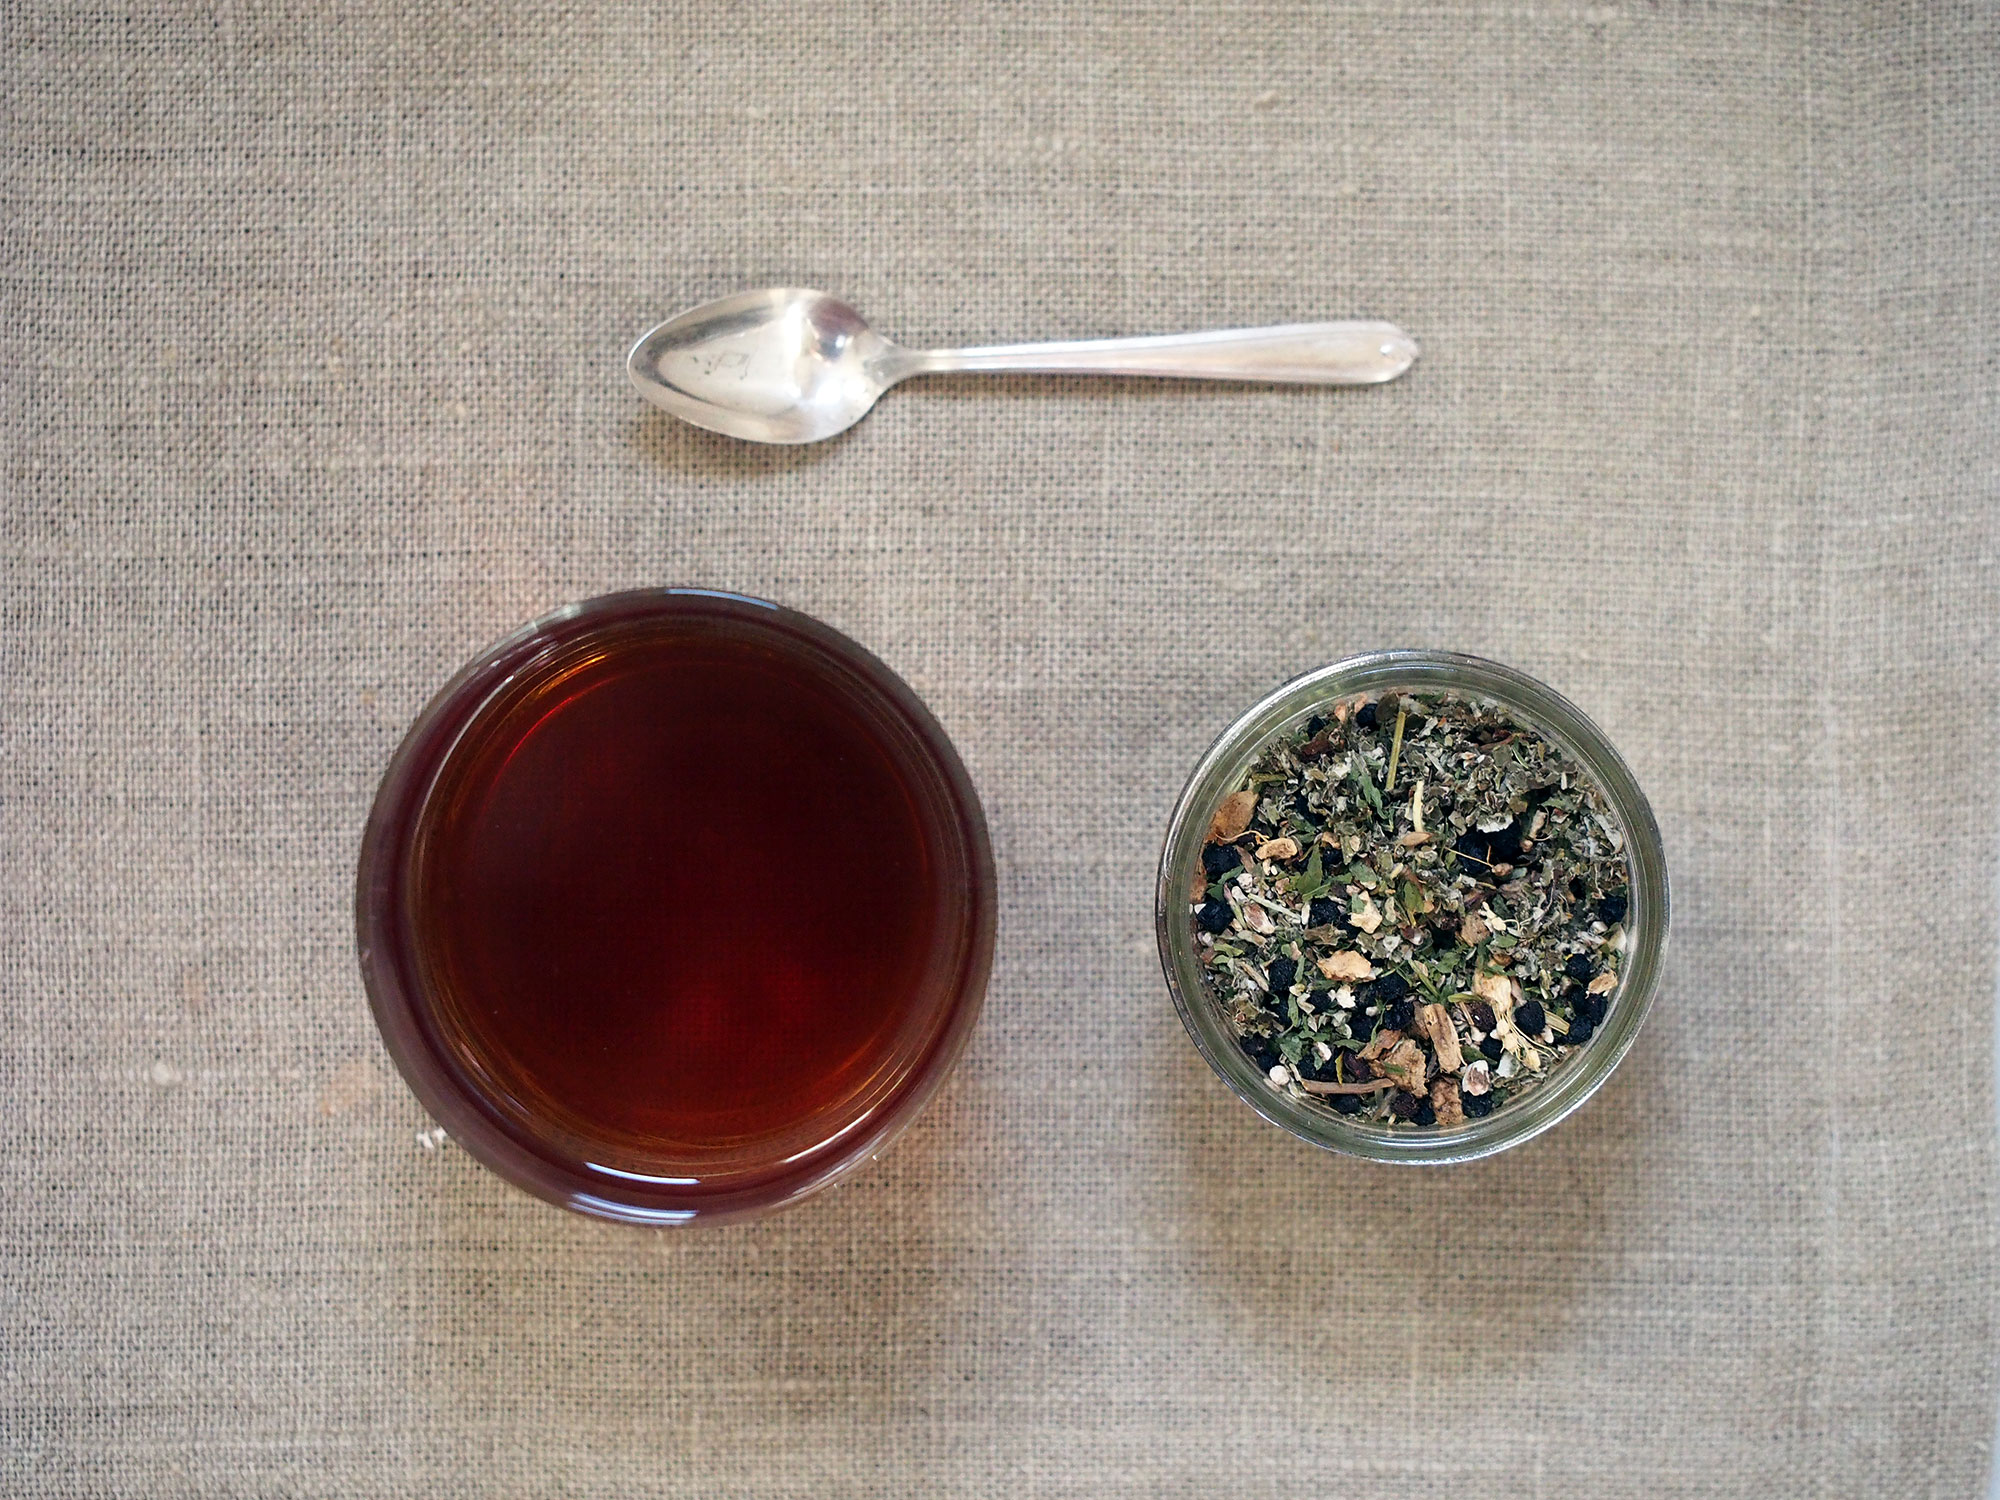 Image result for free pictures of healing teas chakra